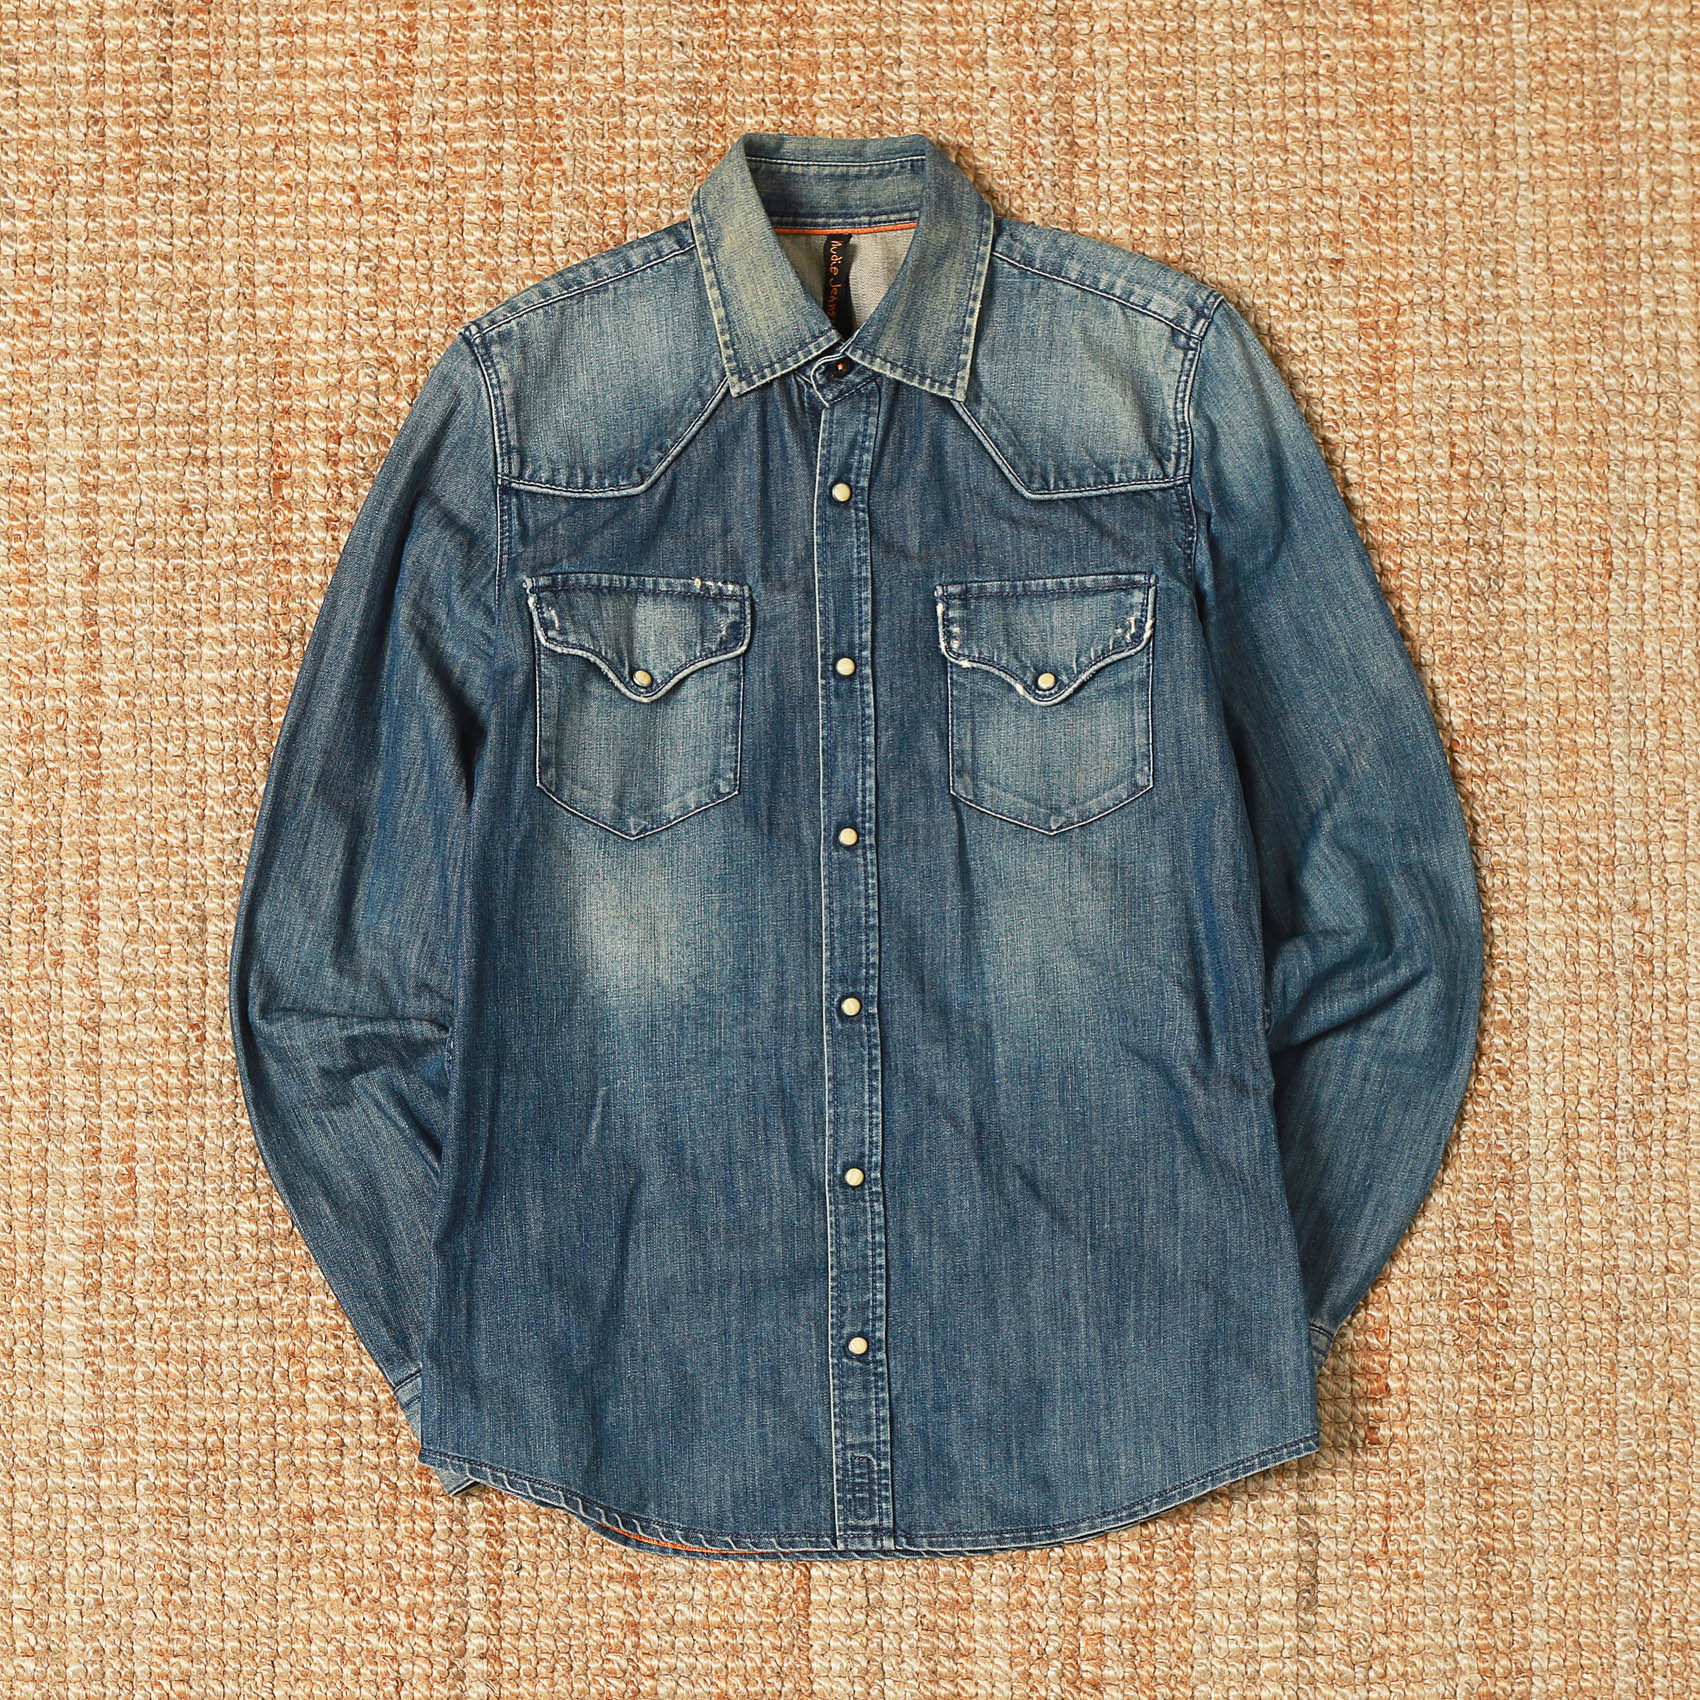 NUDIE JEAN BUTTON DOWN DENIM SHIRTS